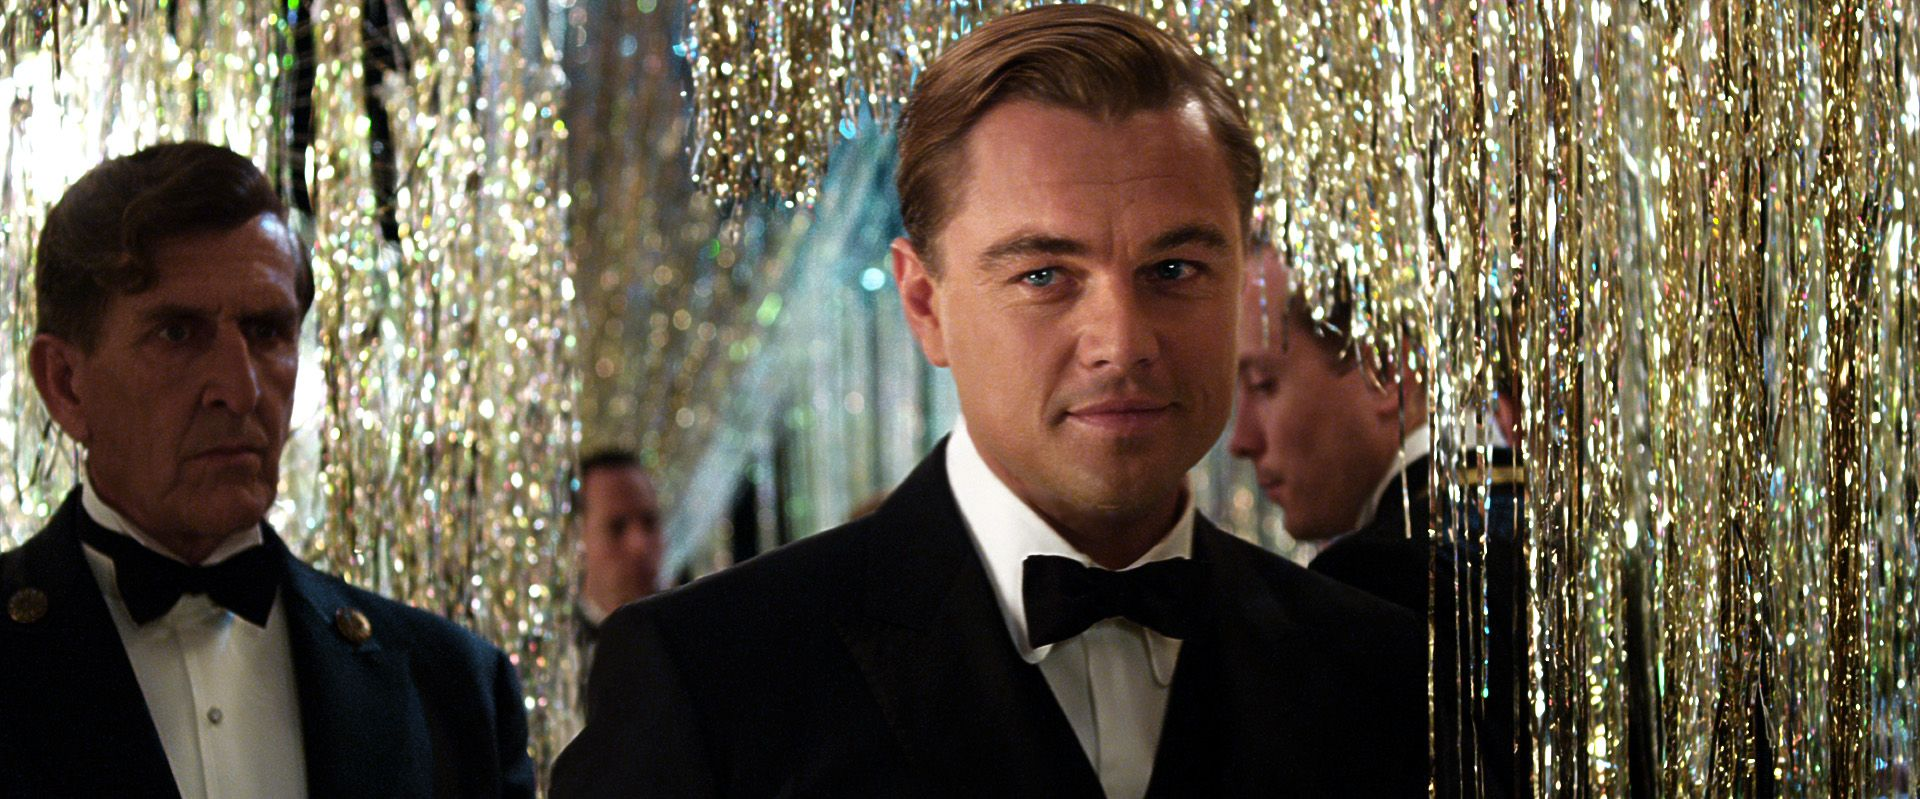 The Great Gatsby Fair is Coming to Town